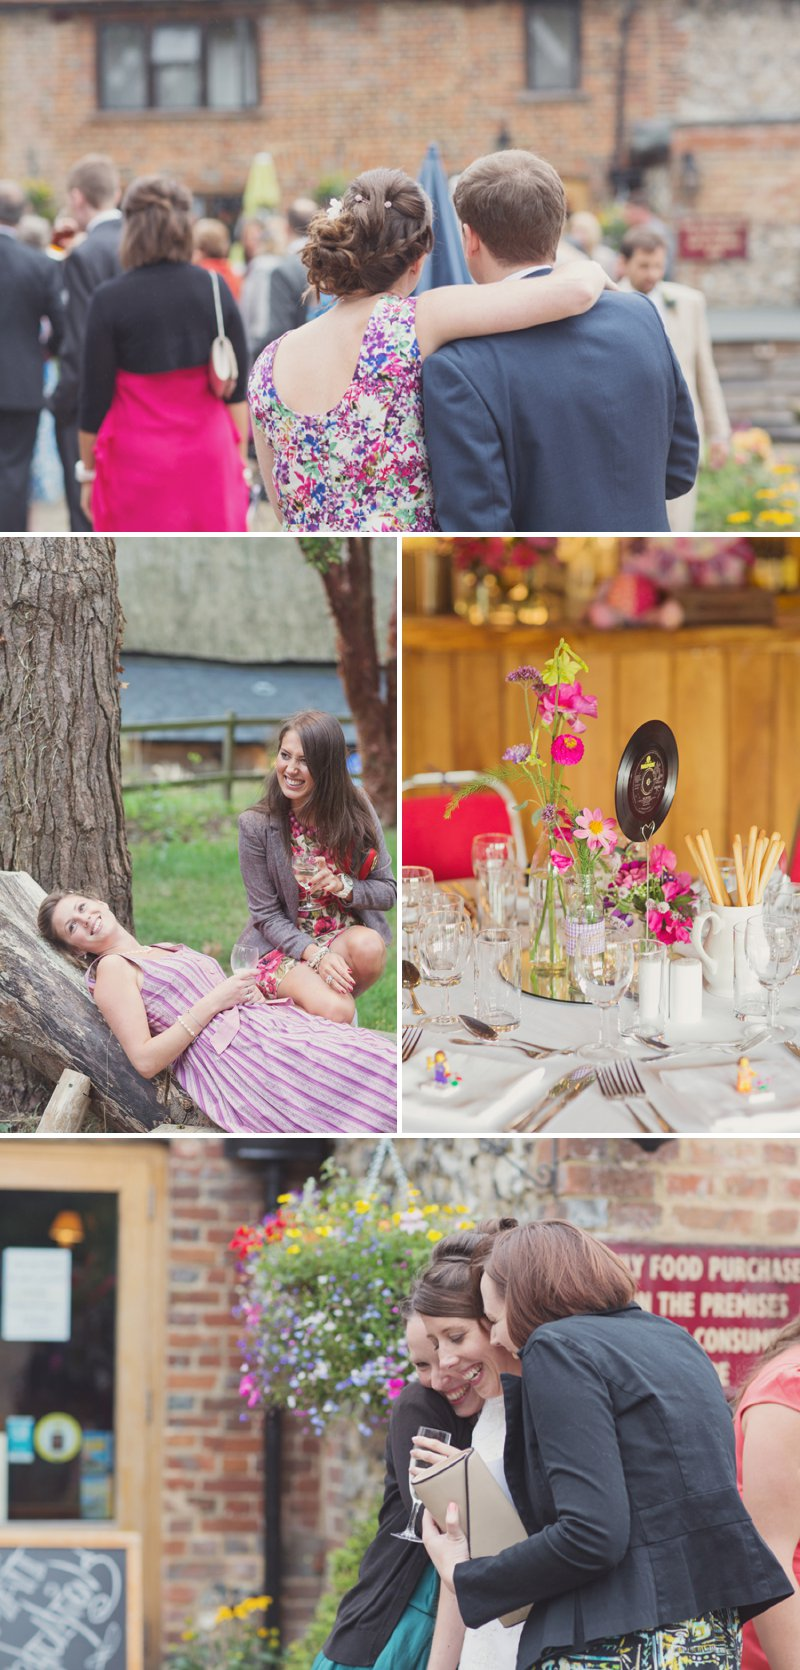 A Rustic Wedding At The Crown Inn Pishill With Bride In Bespoke Lace Gown And Groom In Tweed Suit From Clements And Church With Bunting And An Vintage VW Campervan Images From Cotton Candy Wedding Photography 7